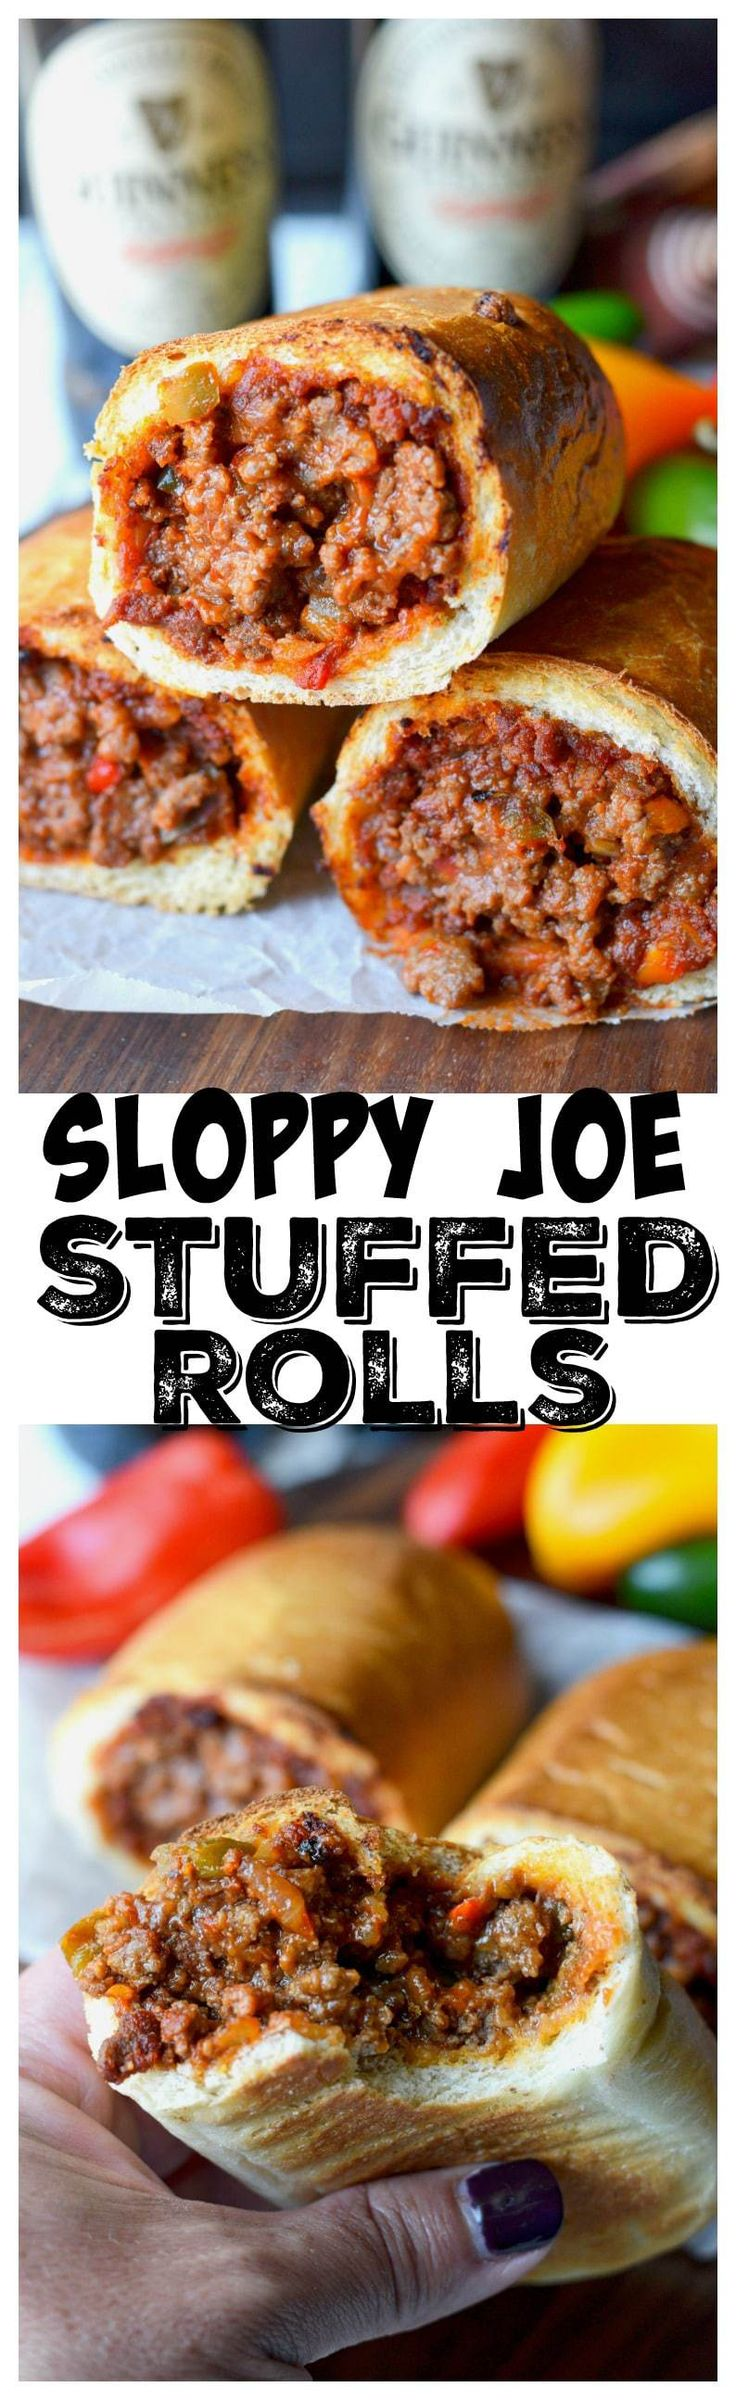 This recipe is so easy...a little twist on the classic sloppy joe.